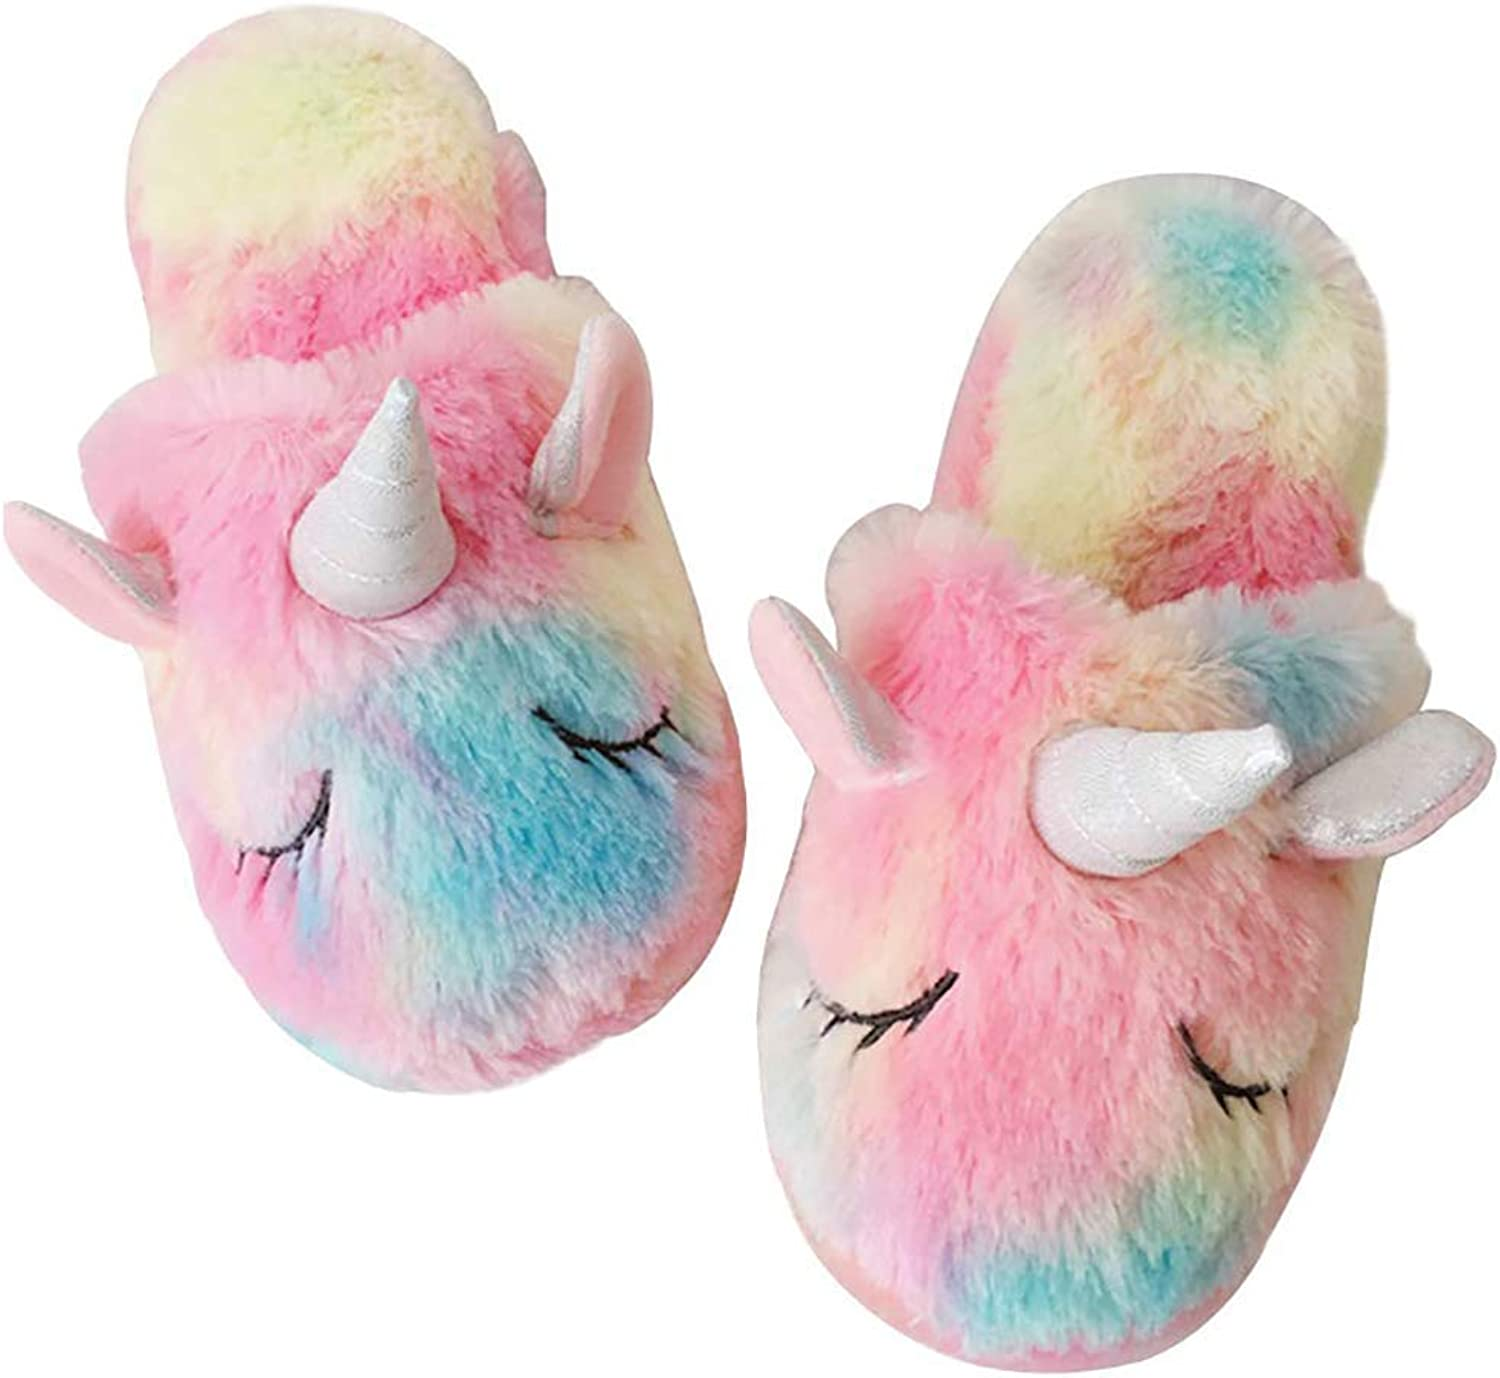 Techcity Rainbow Unicorn Slippers Cute Fluffy Girls Slippers Cozy Plush Indoor Outdoor Women Slippers Best Unicorn Gifts